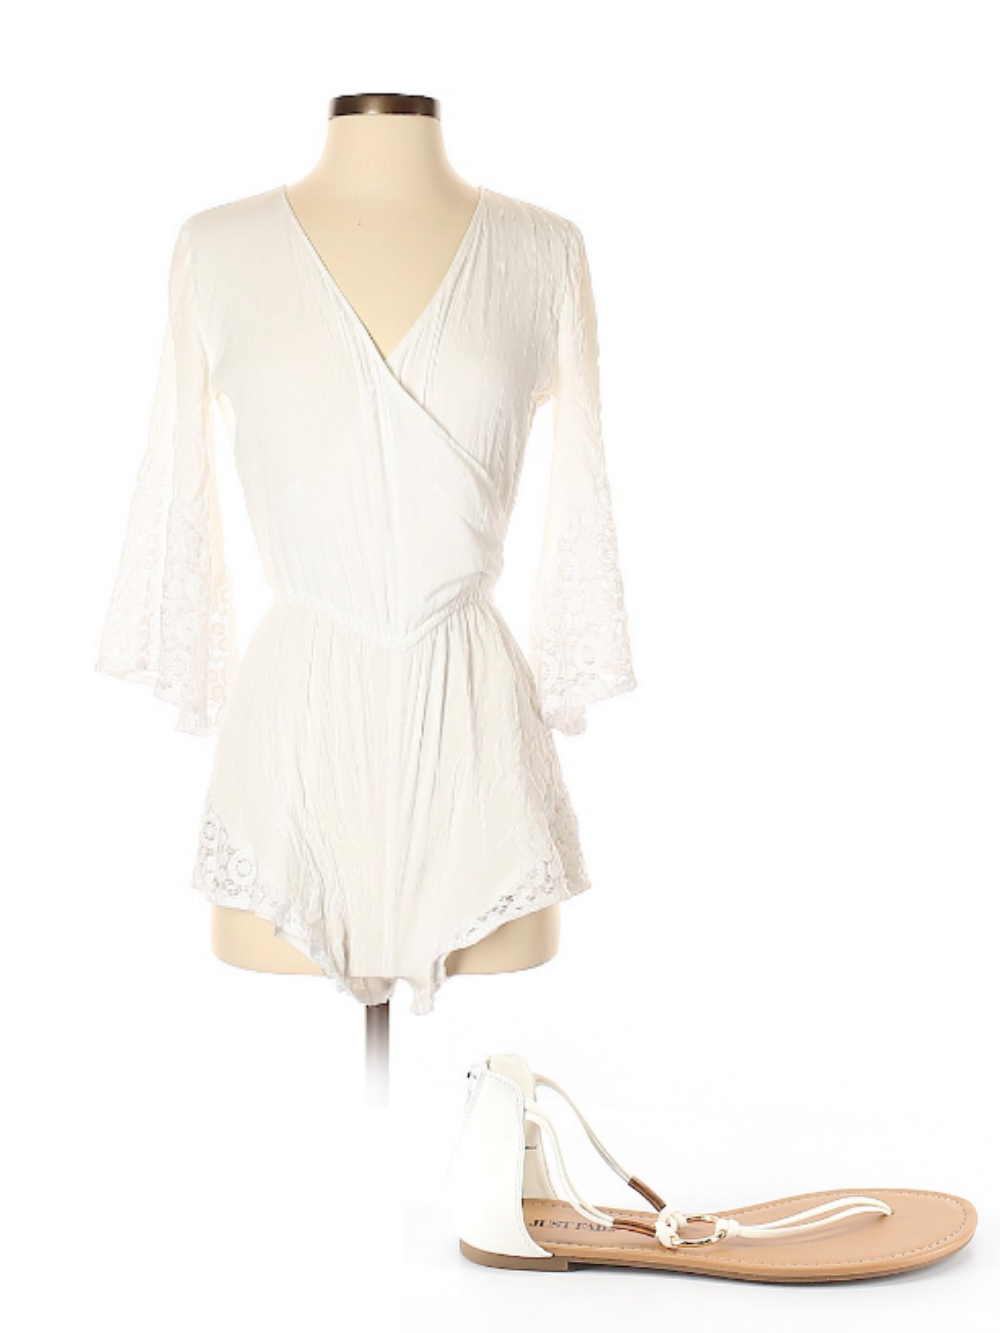 All white outfit for July 4th—flowy romper and white sandals